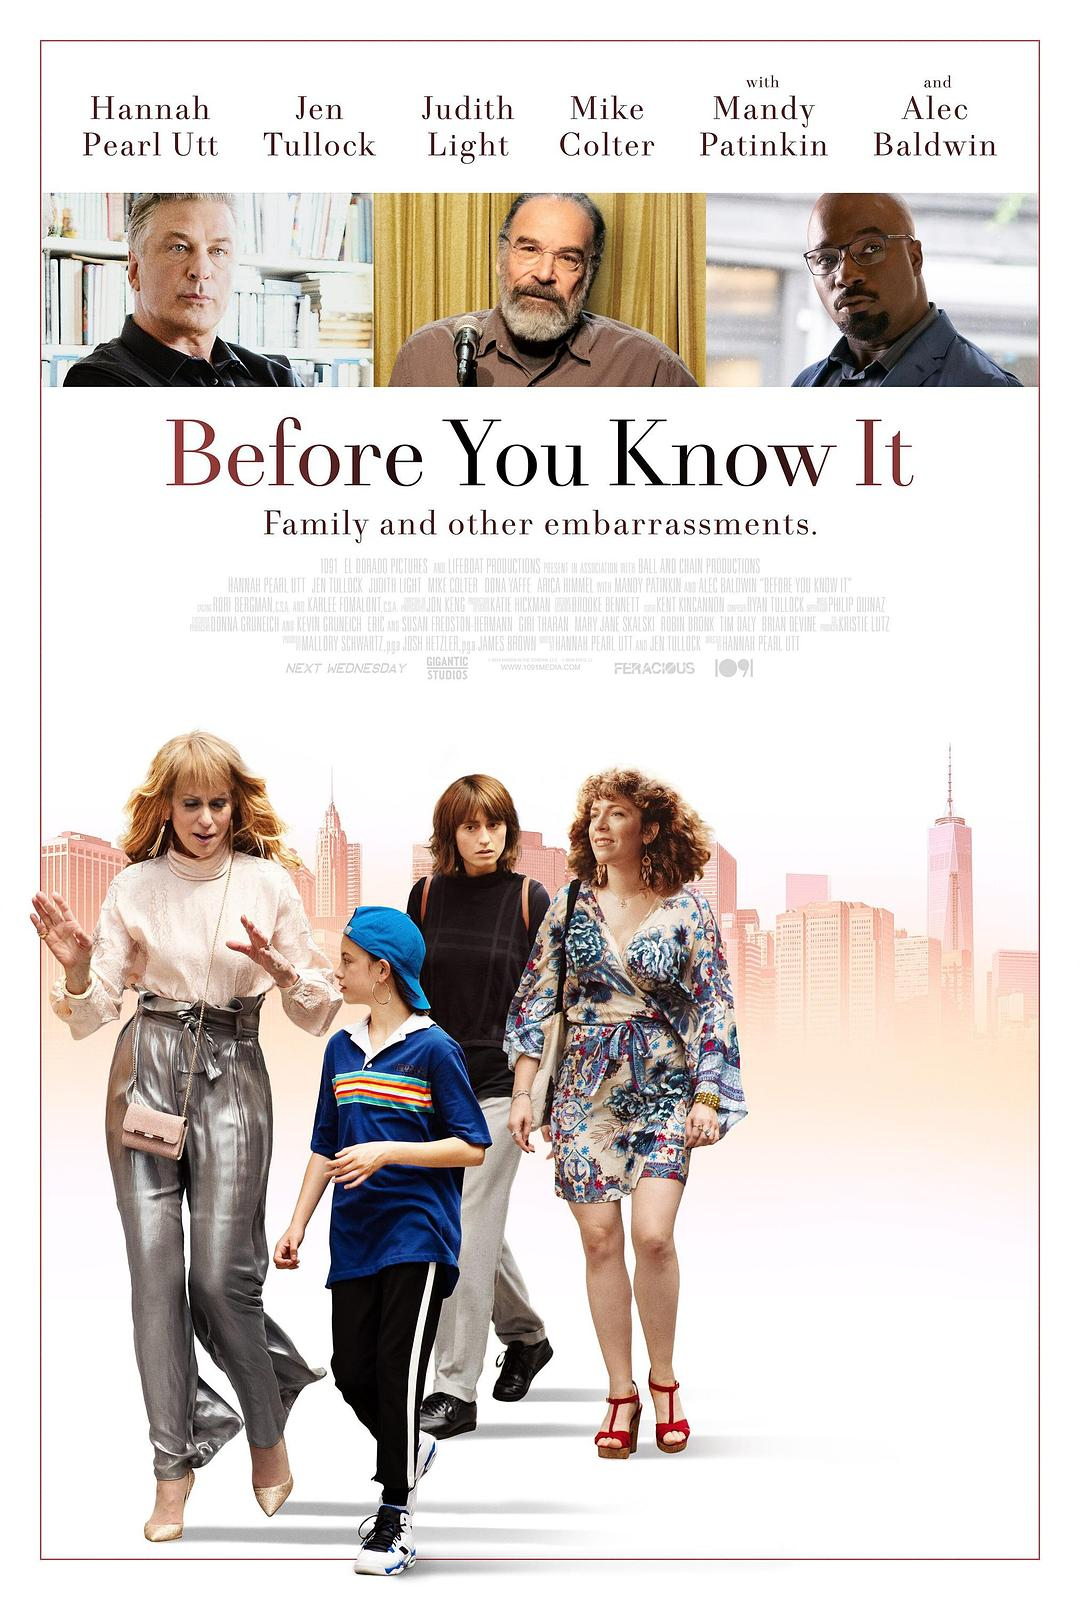 悠悠MP4_MP4电影下载_后知后觉 Before.You.Know.It.2019.1080p.WEBRip.x264-RARBG 1.89GB